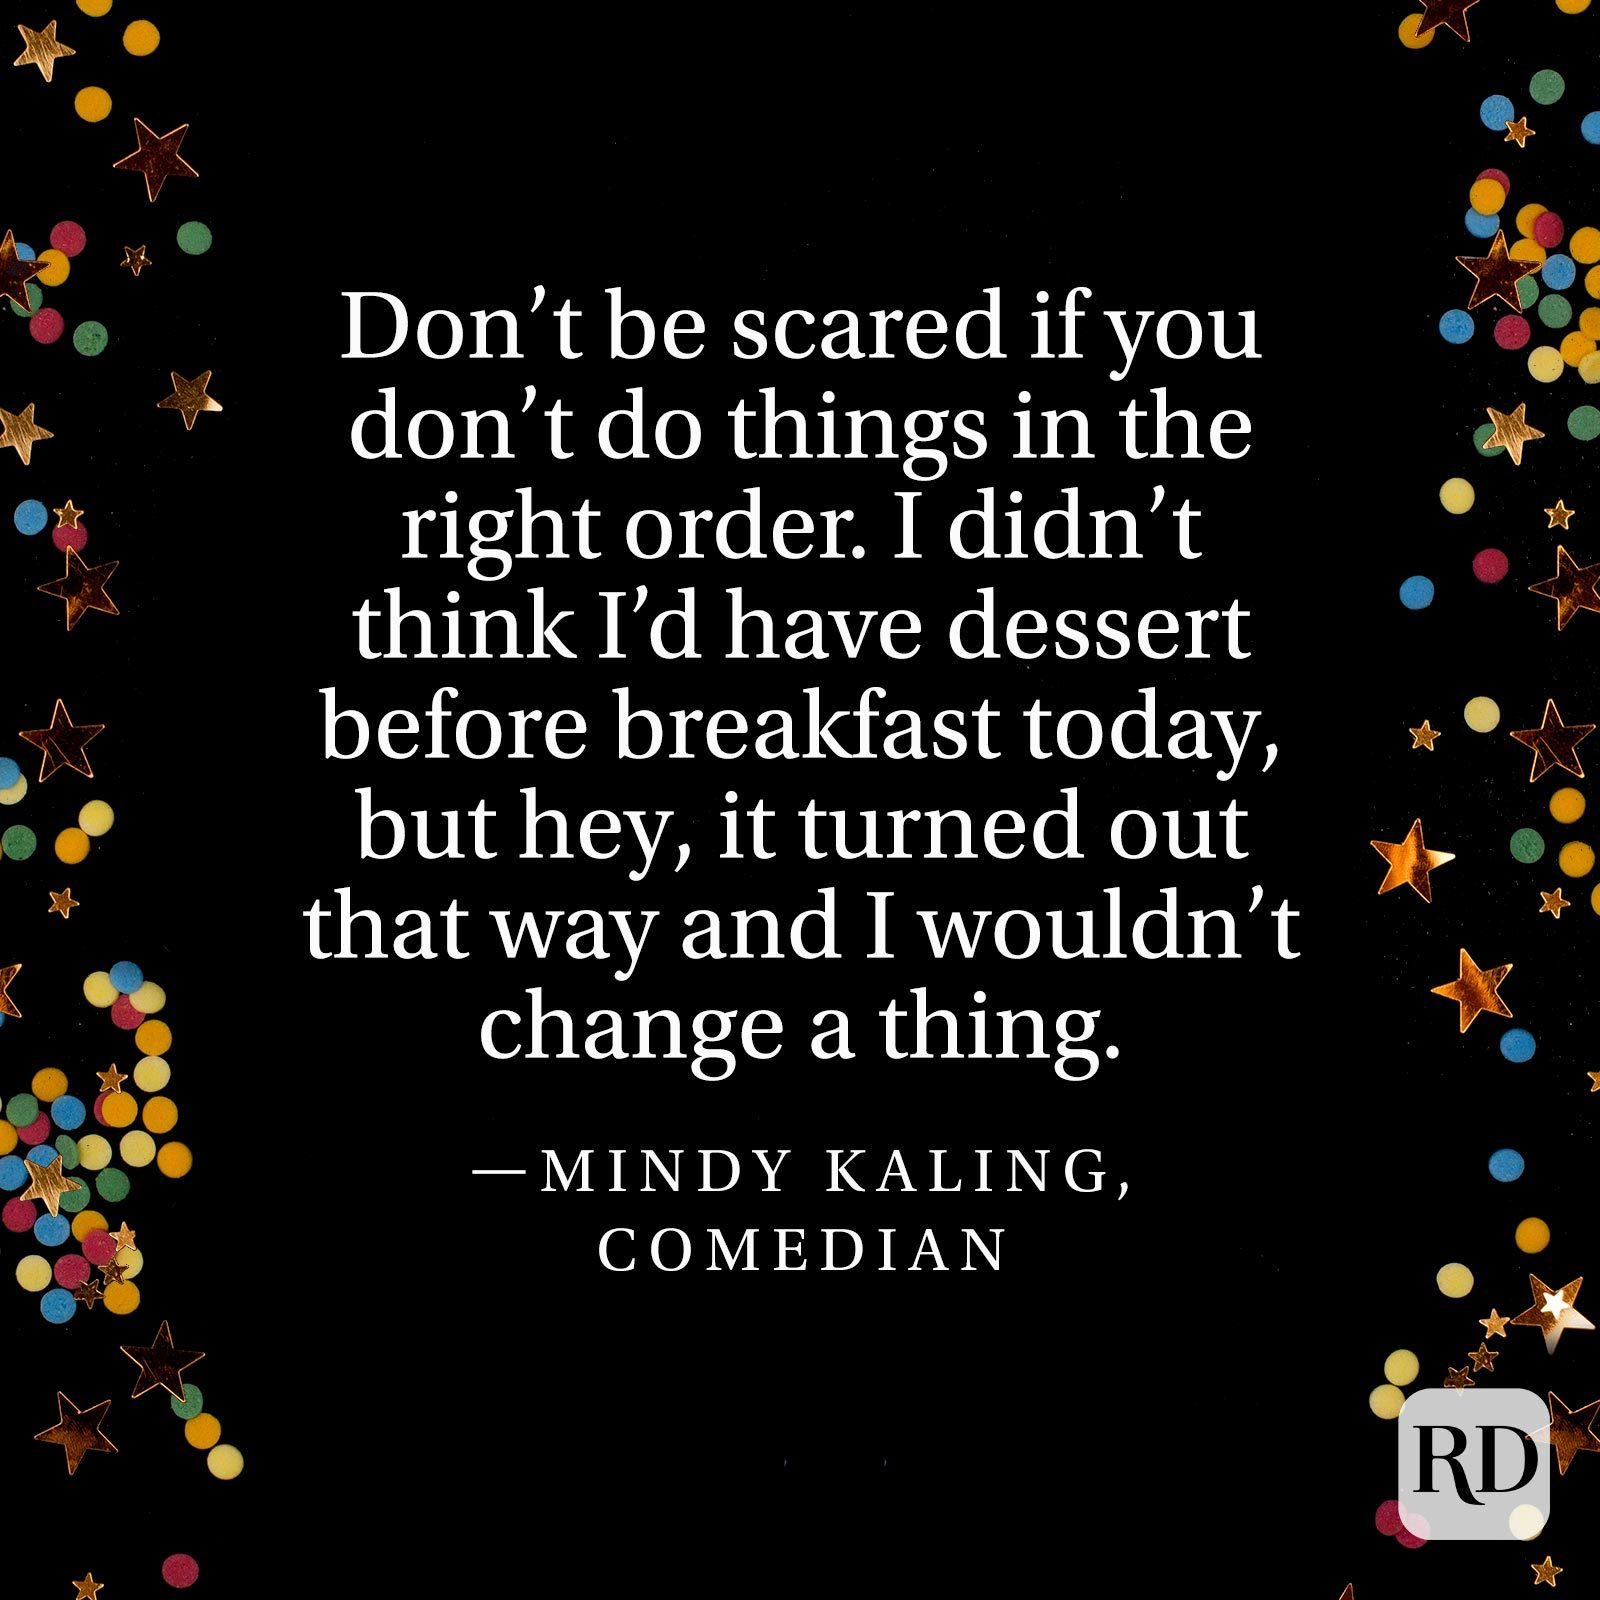 """Don't be scared if you don't do things in the right order. I didn't think I'd have dessert before breakfast today, but hey, it turned out that way and I wouldn't change a thing."" —Mindy Kaling, comedian"